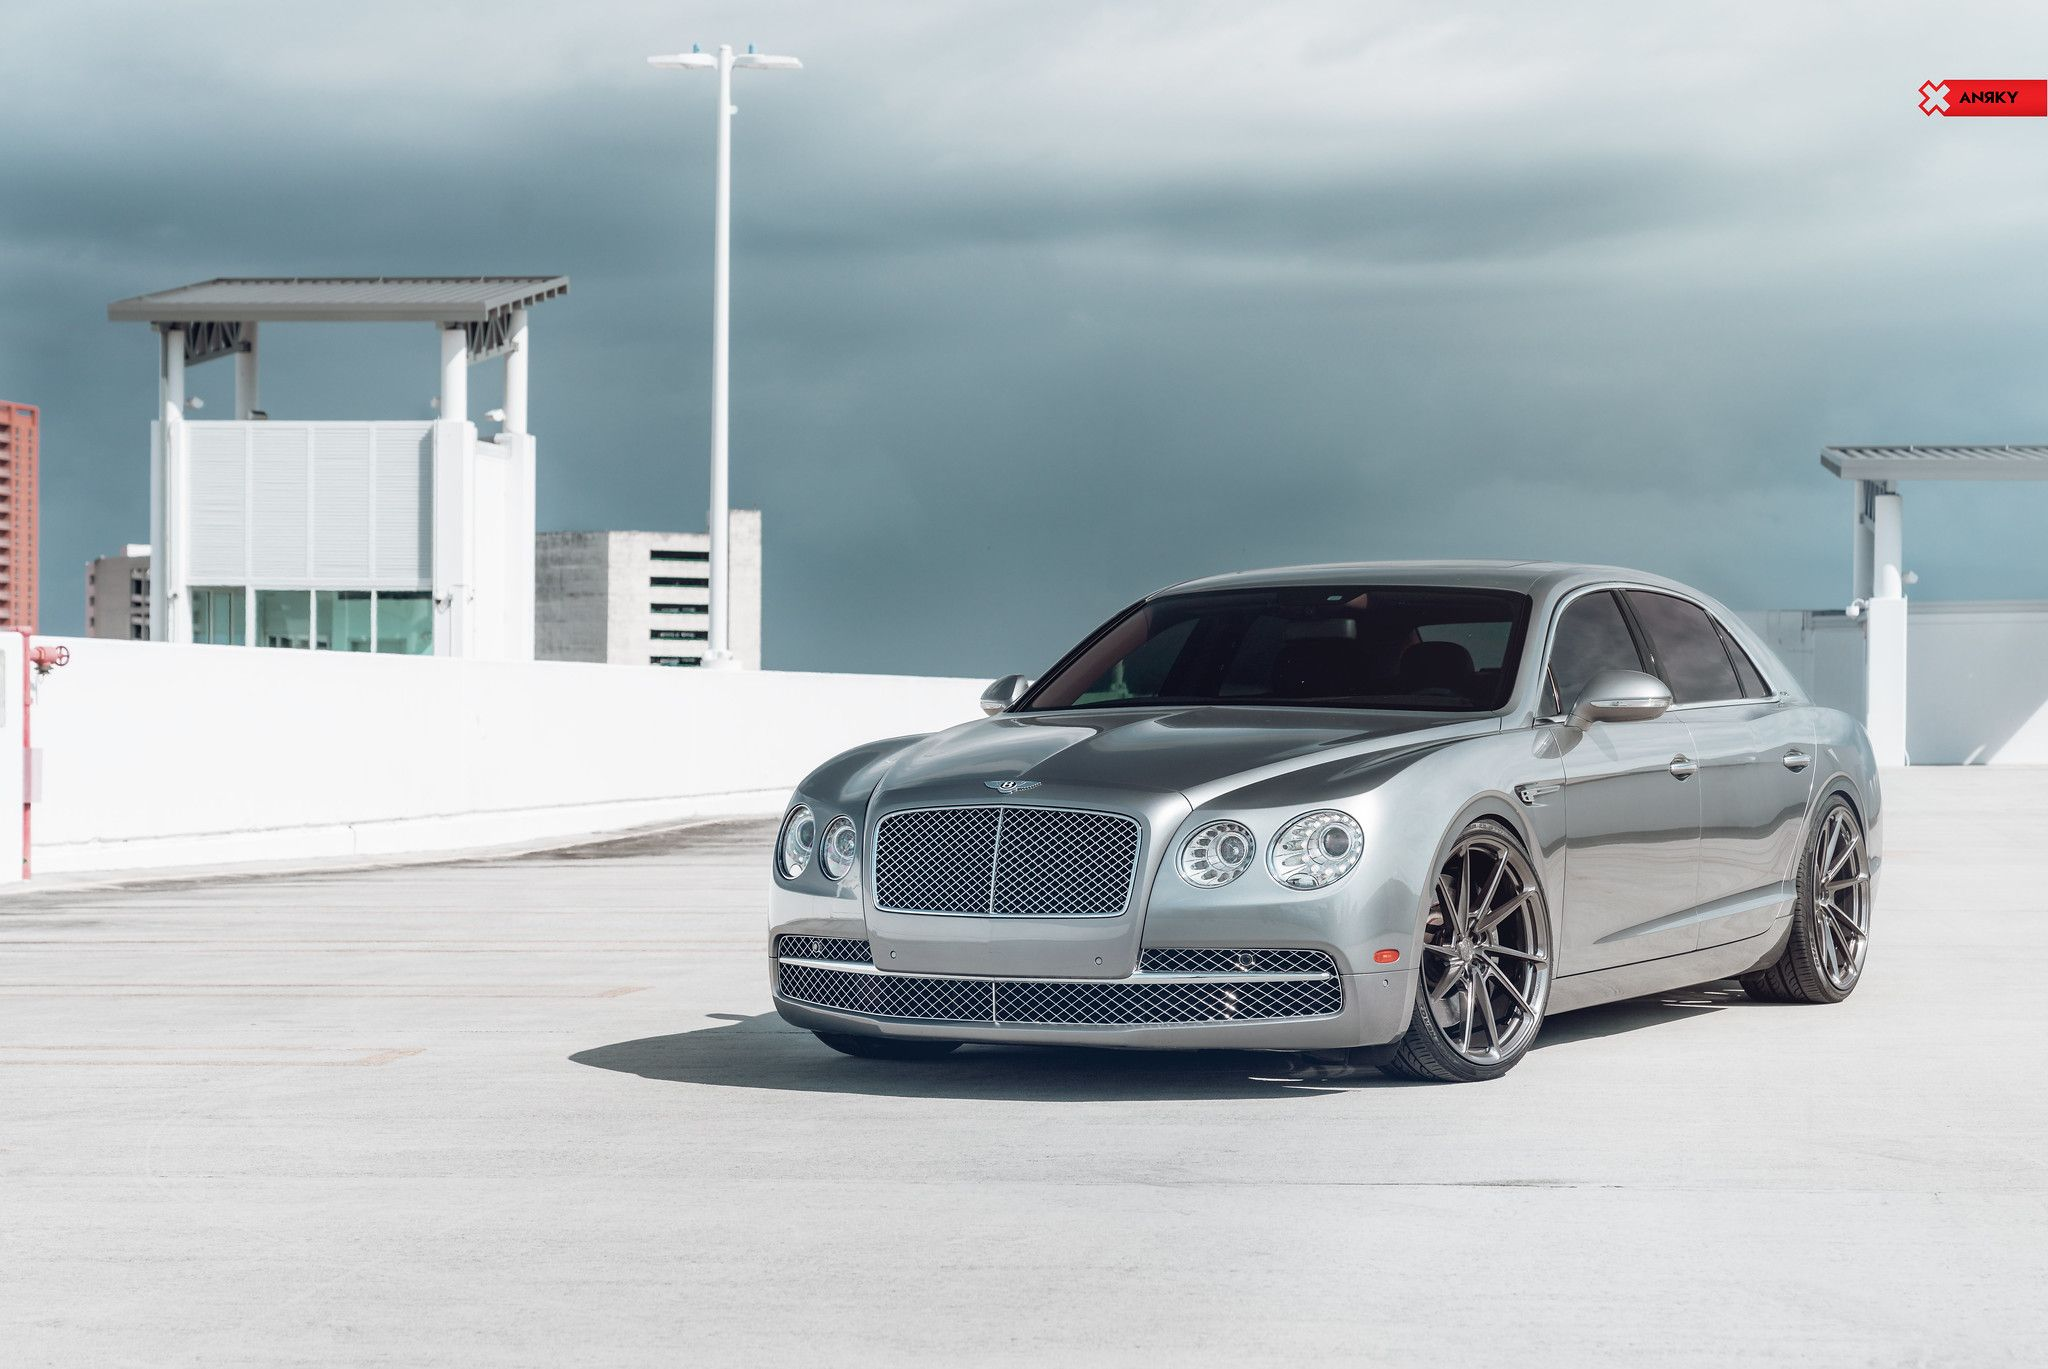 Pin By Carid On Car Parts Accessories In 2020 Car Parts And Accessories Bentley Flying Spur Bentley